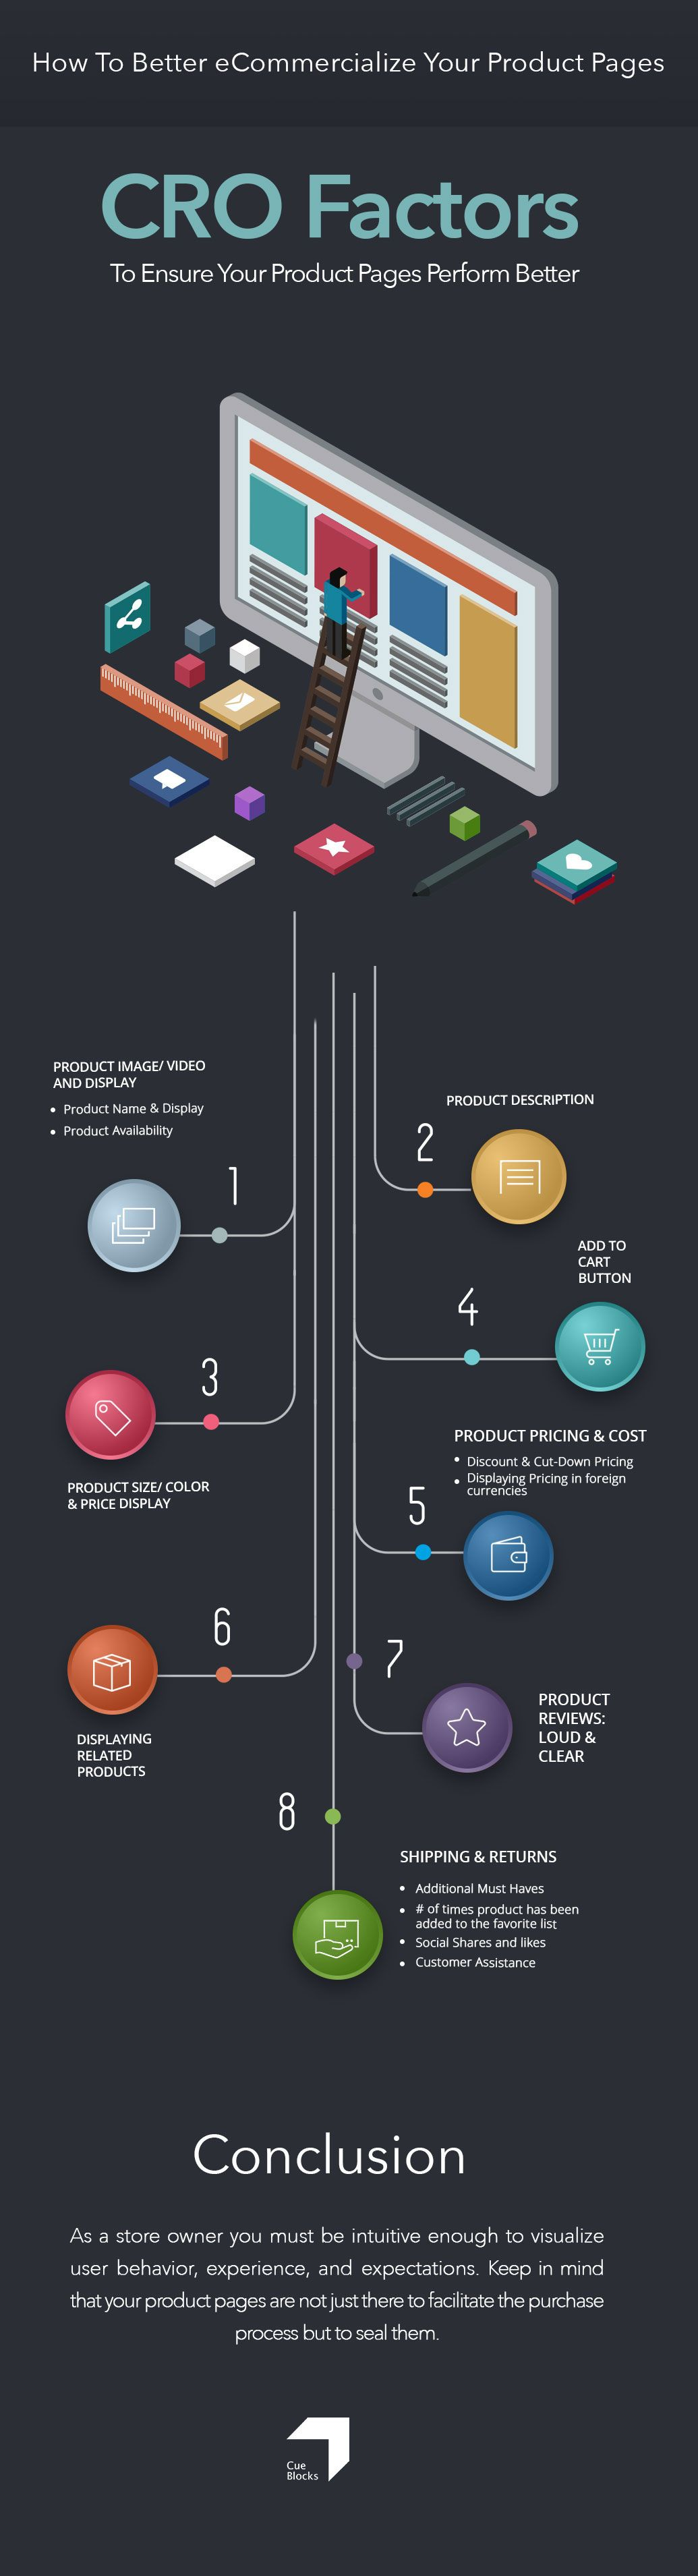 Product Pages -CRO Infographic